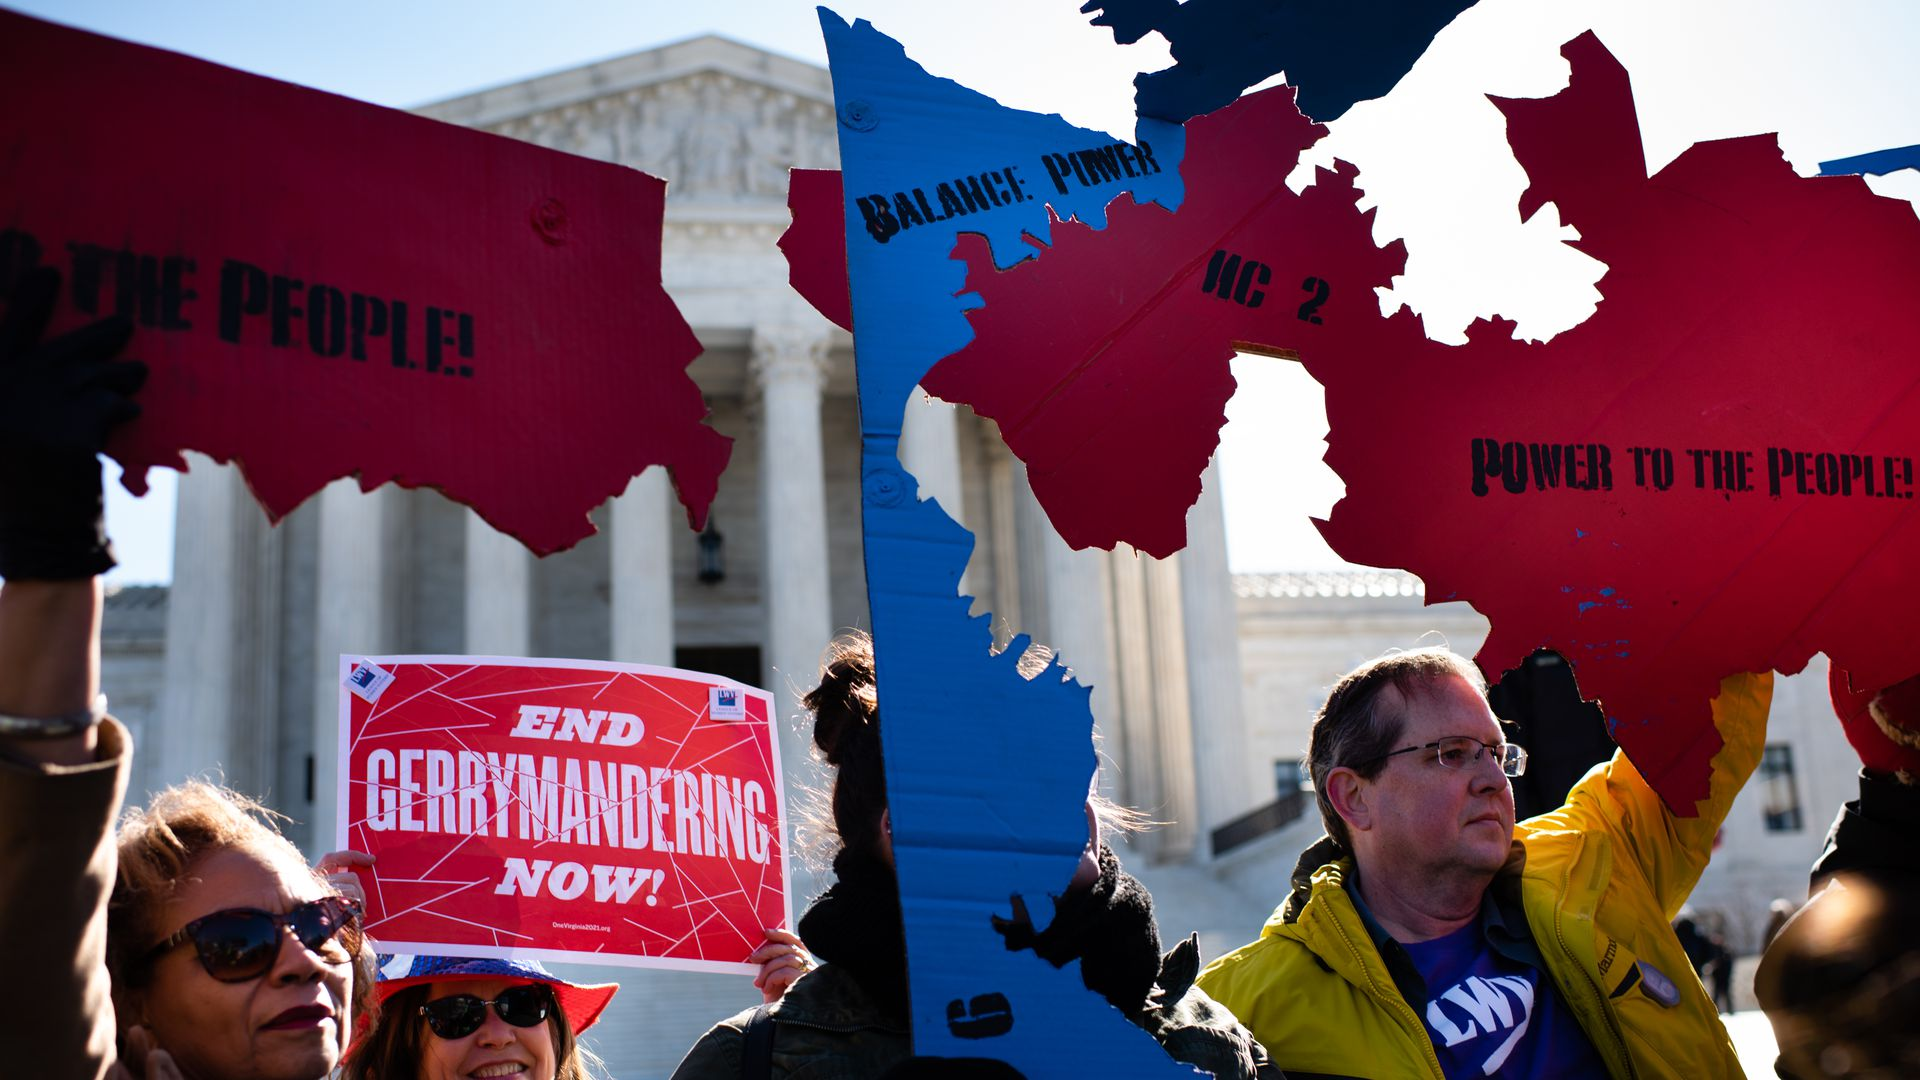 """In this image, people in coats hold up signs that read """"End Gerrymandering now"""" and """"power to the people"""" while standing in front of the Supreme Court."""